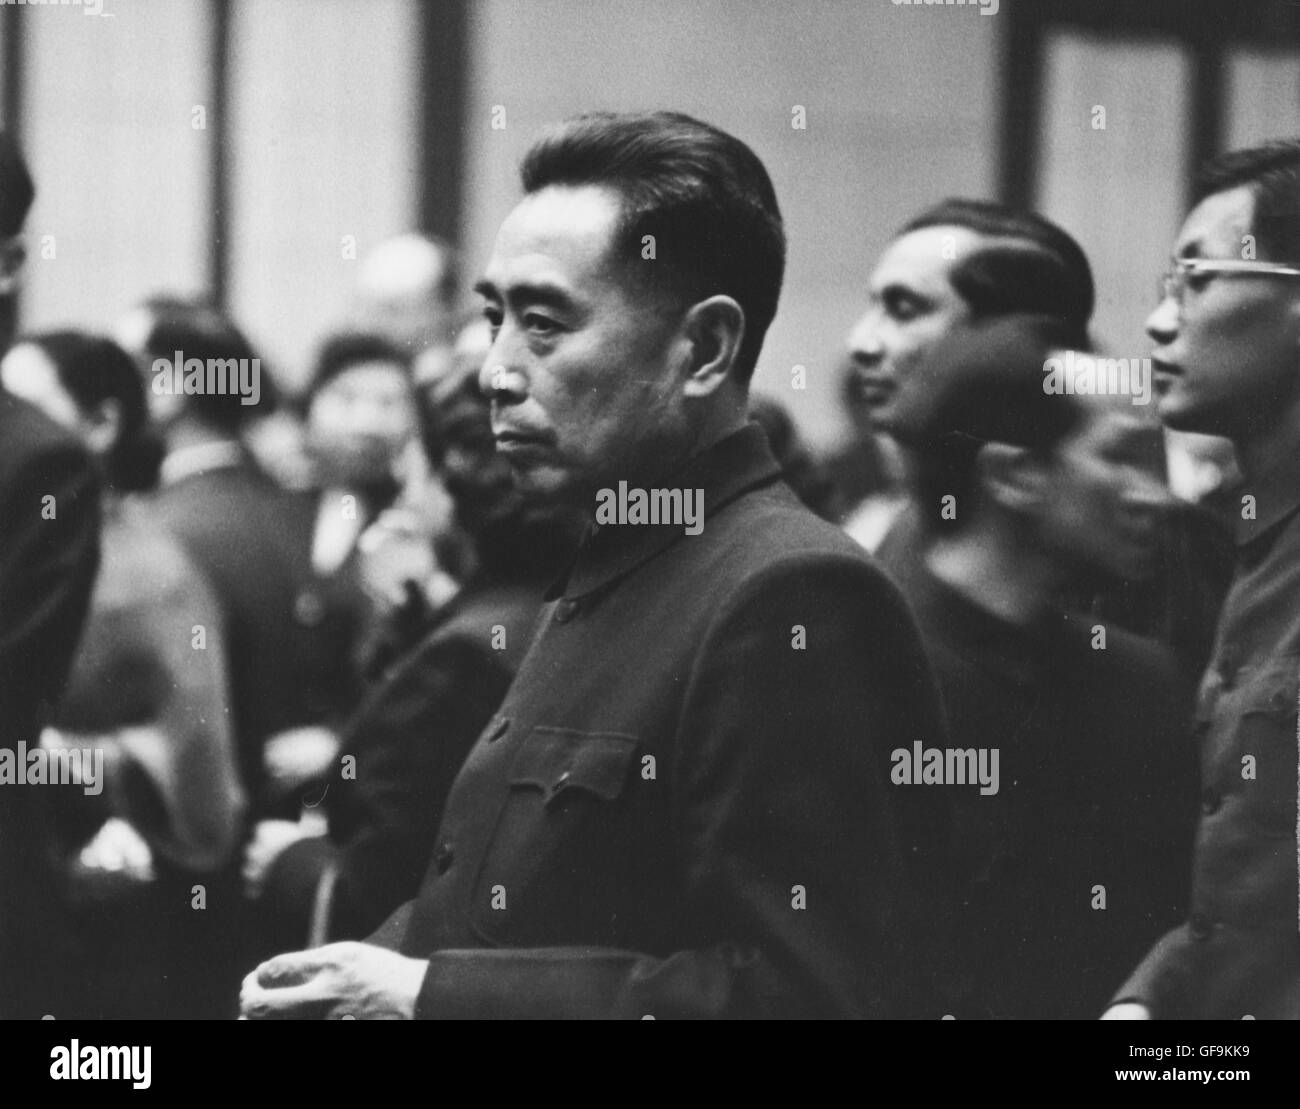 Chou En-Lai at a government reception, 1957. - Stock Image